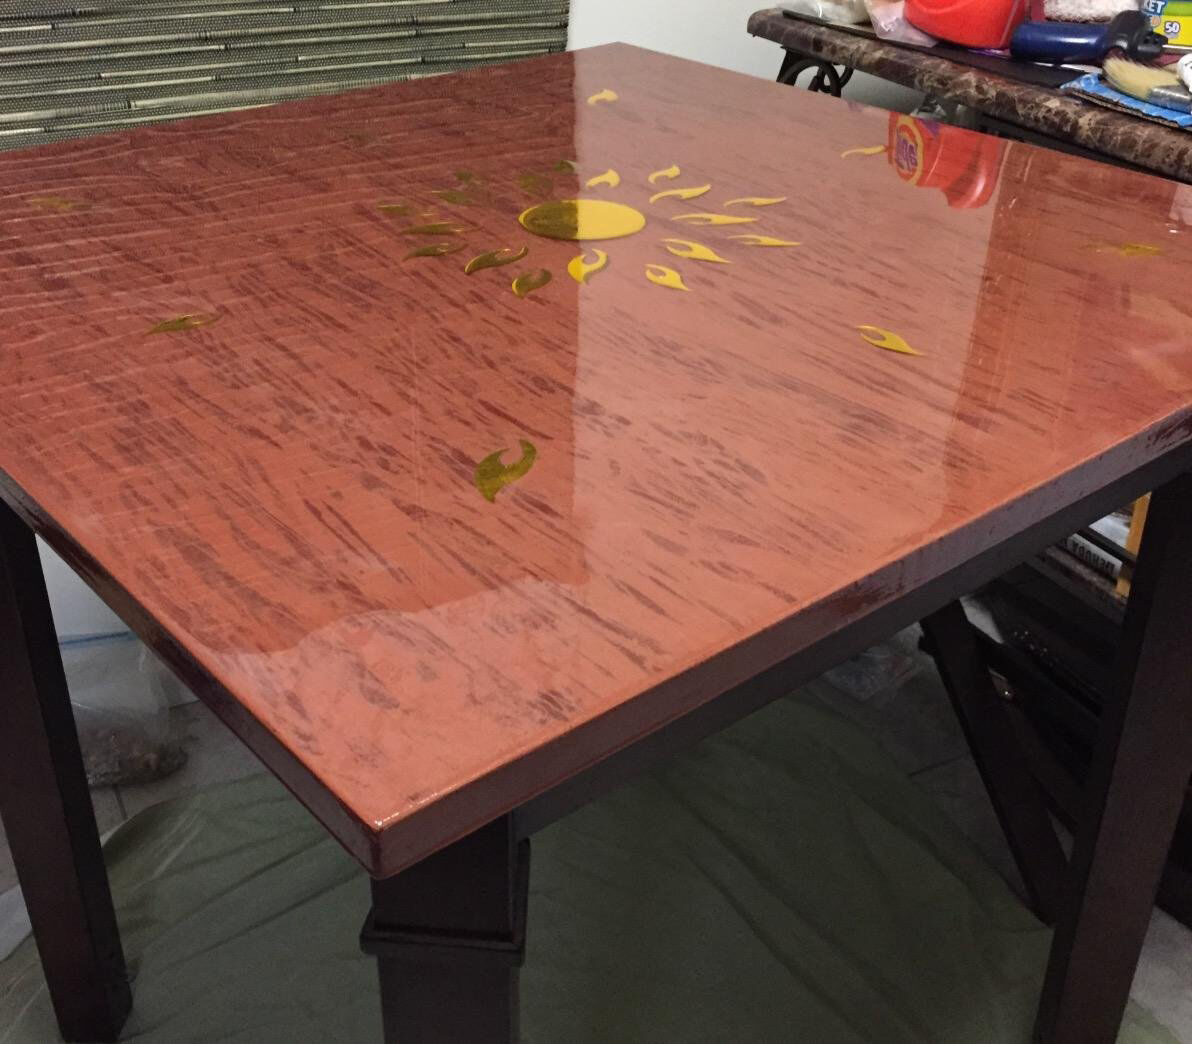 Crystal Clear Bar Table Top Epoxy Resin Coating Wood For Tabletop – 64 Oz Kit Adhesives, Sealants & Tapes